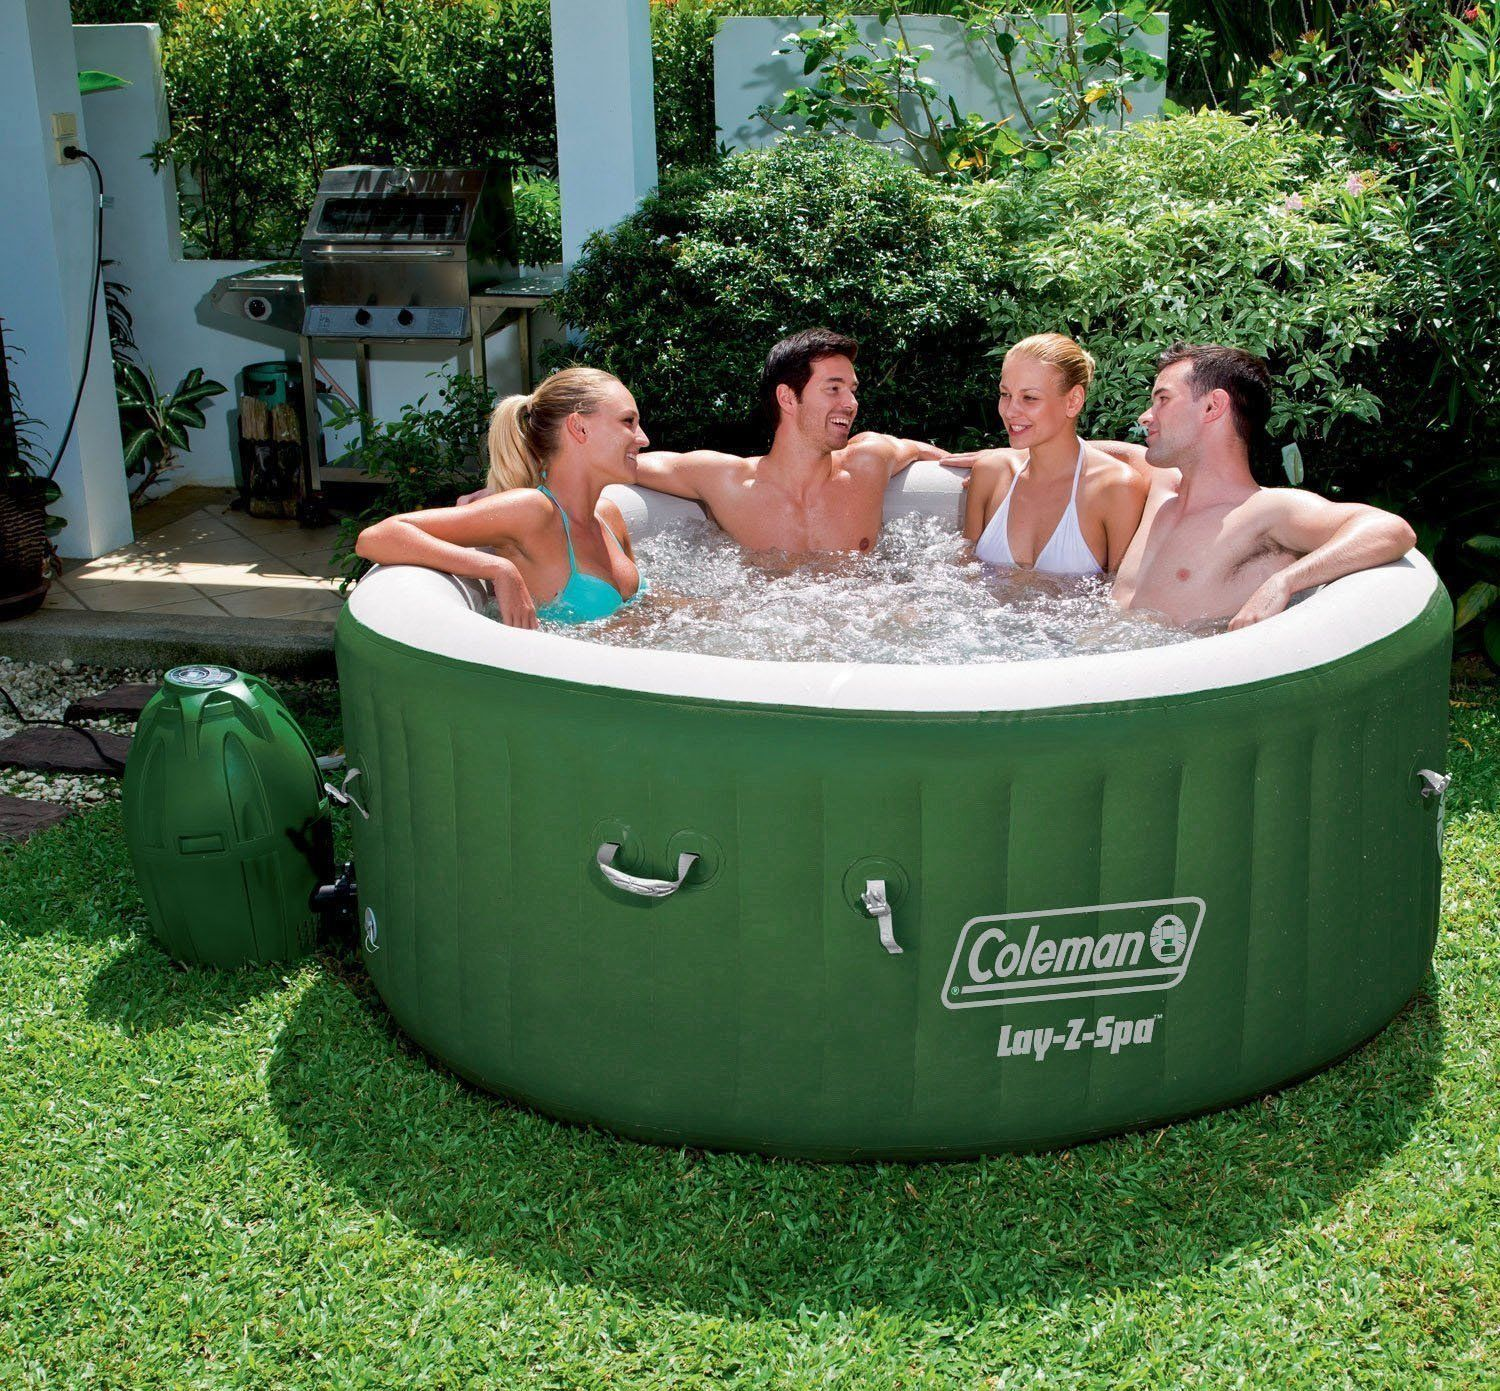 Cheap diy hot tub jacuzzi 4 - Small Hot Tub Best Inflatable Hot Tub Reviews The Pool Cleaner Expert Inflatable Hot Tub Pinterest